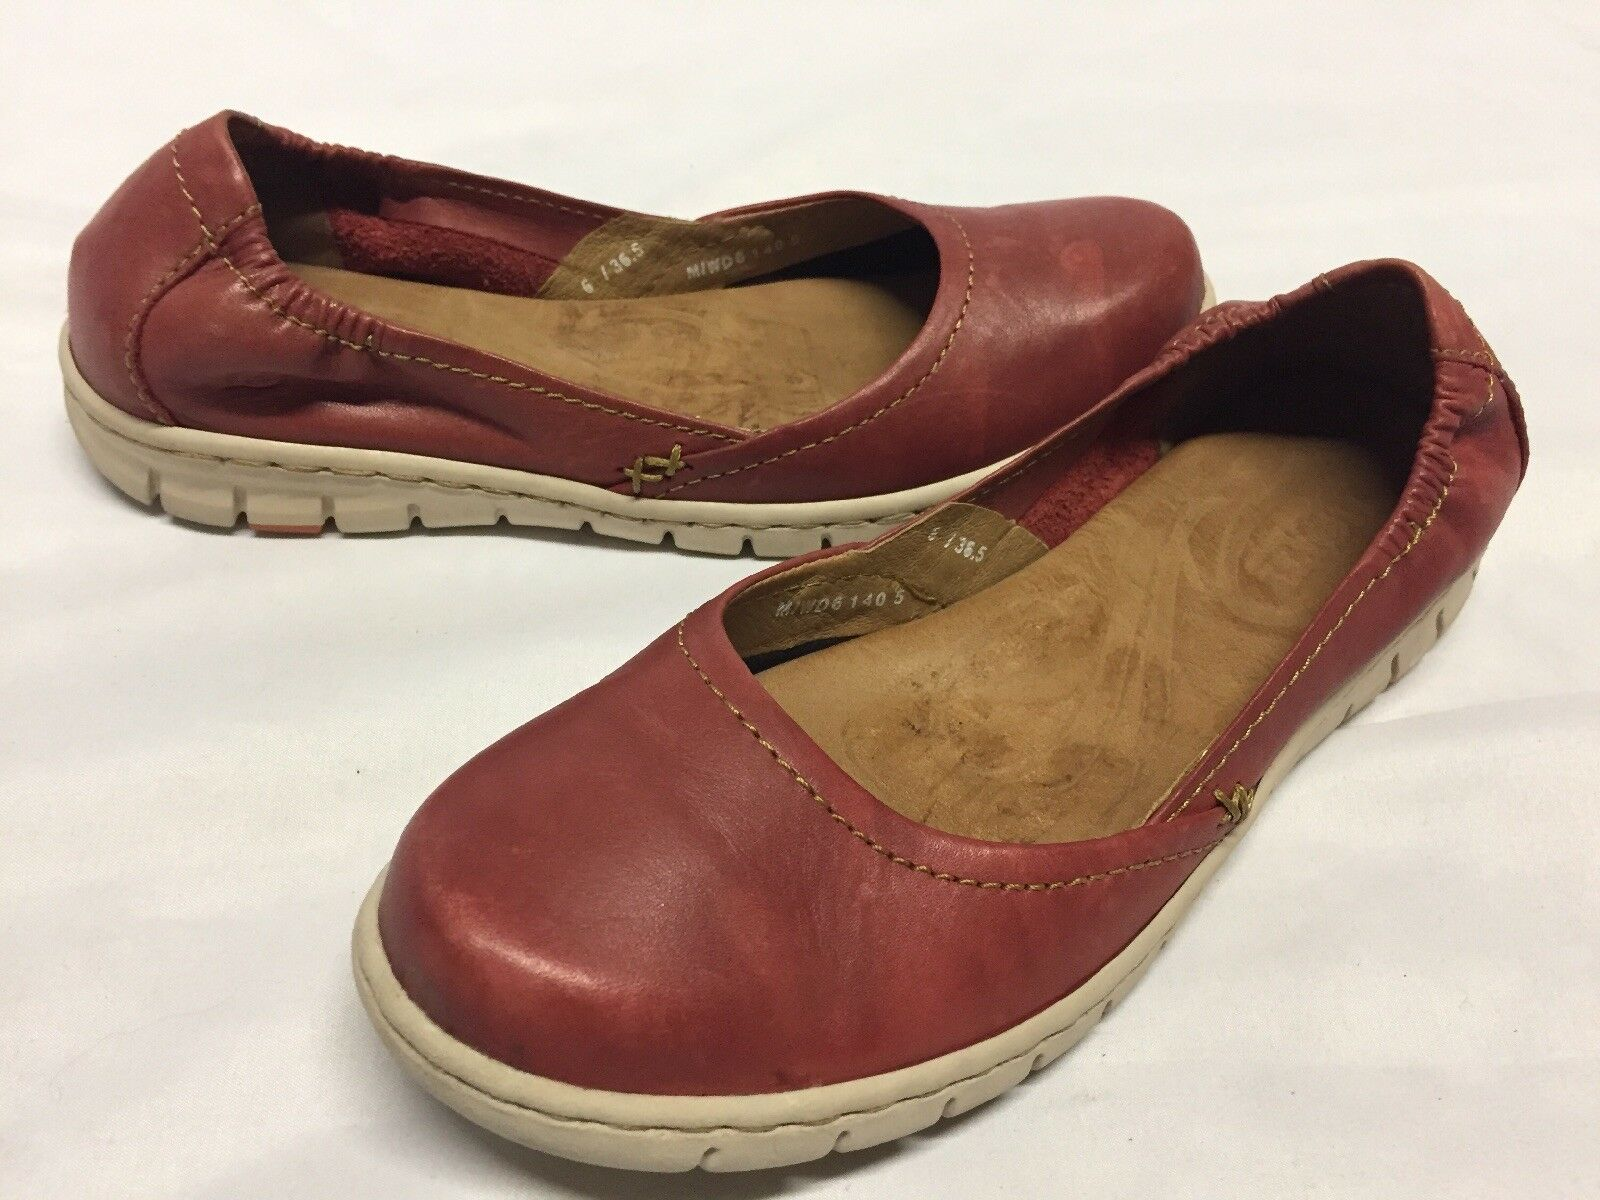 Born Women's USED shoes, Red Leather,Ballet flat Size 6, Eur 36.5